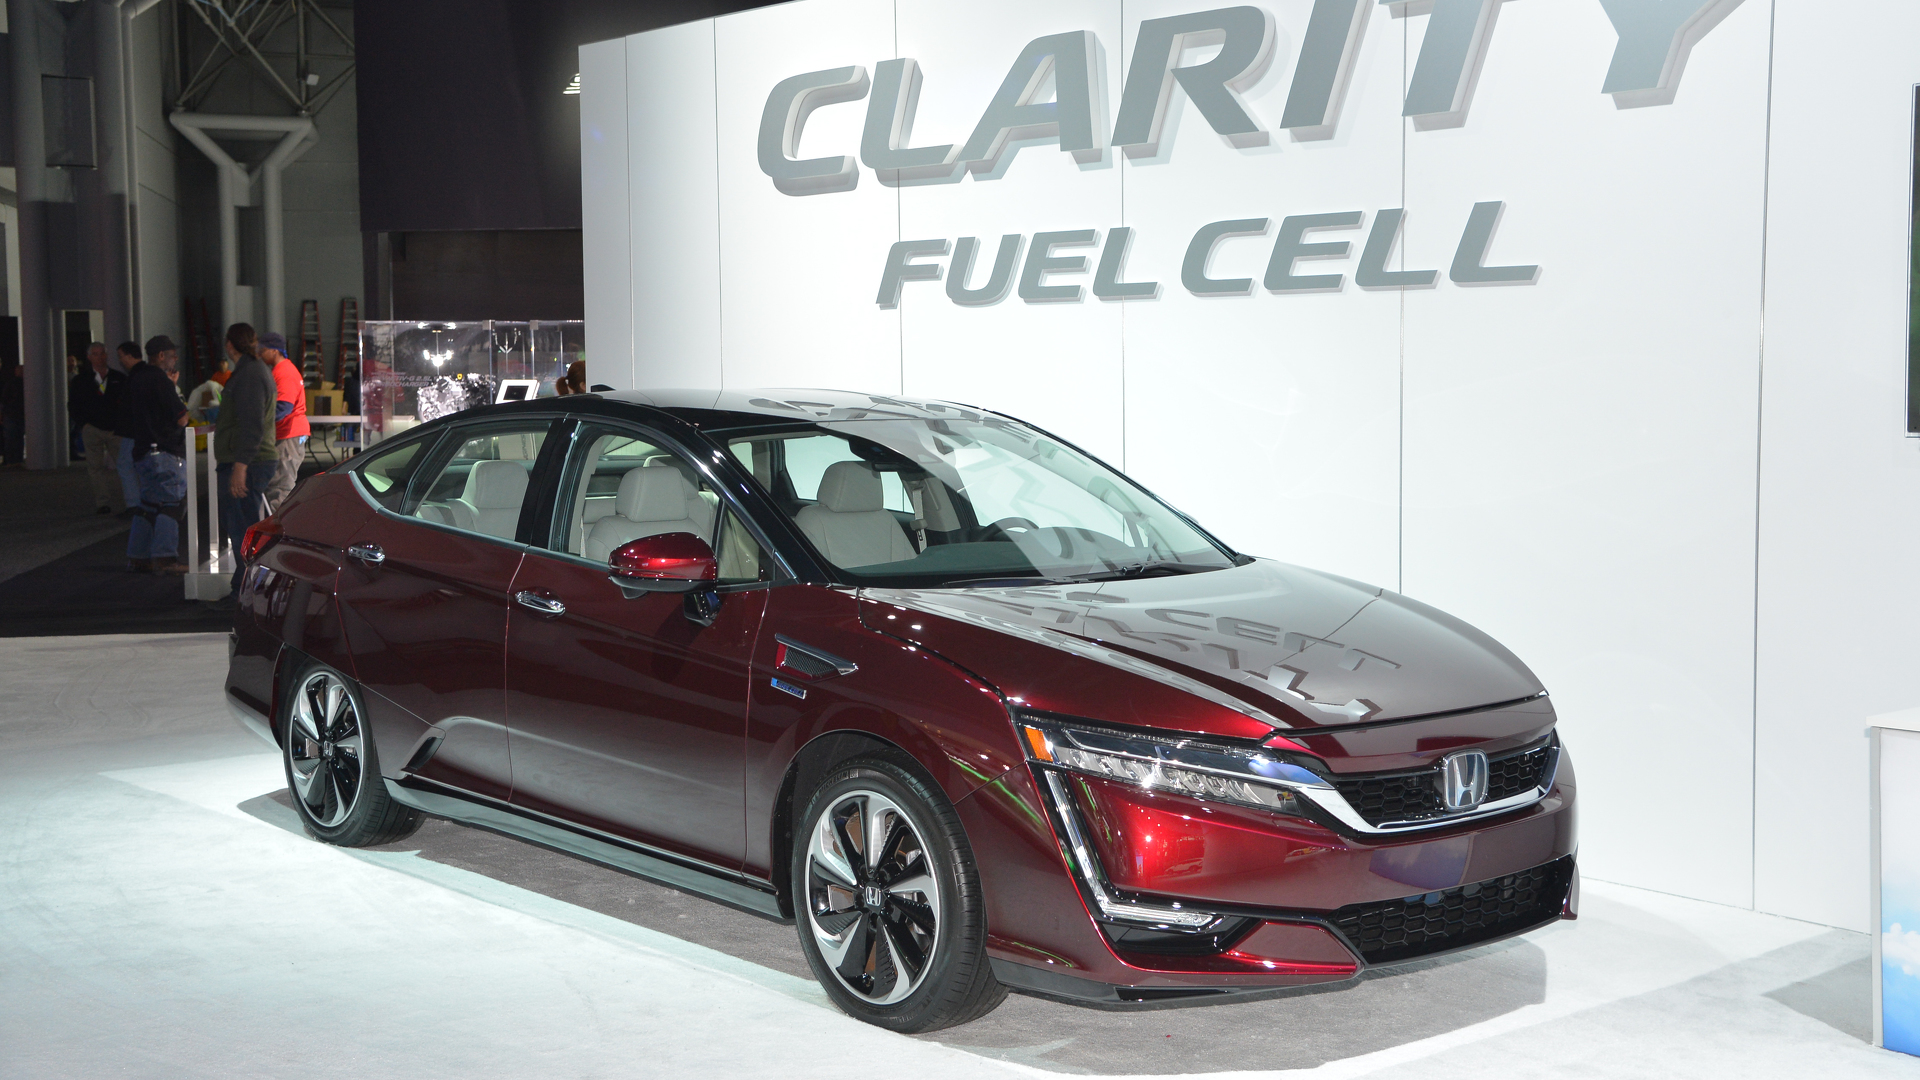 2017 Honda Clarity Fuel Cell bets on hydrogen in New York